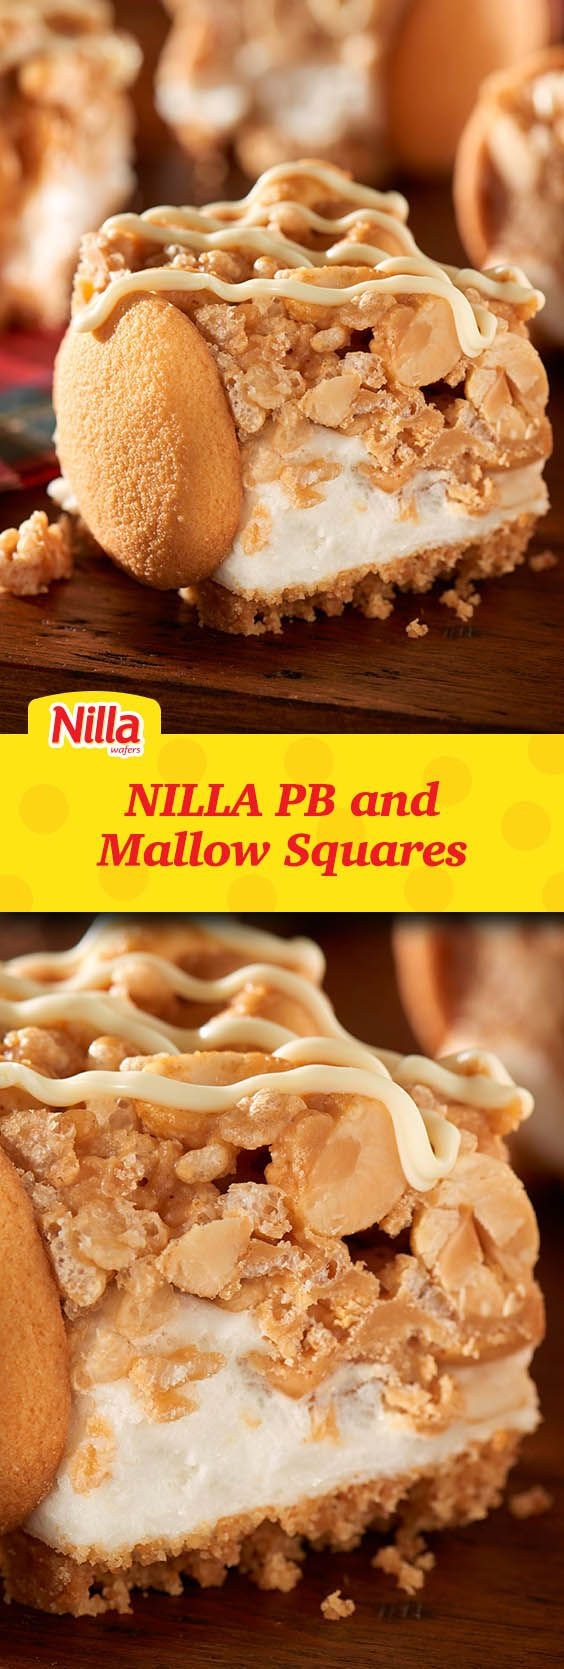 Savor the flavor of NILLA PB and Mallow Squares, the perfect portable for the next Summer BBQ. Easy to make and even easier eat!